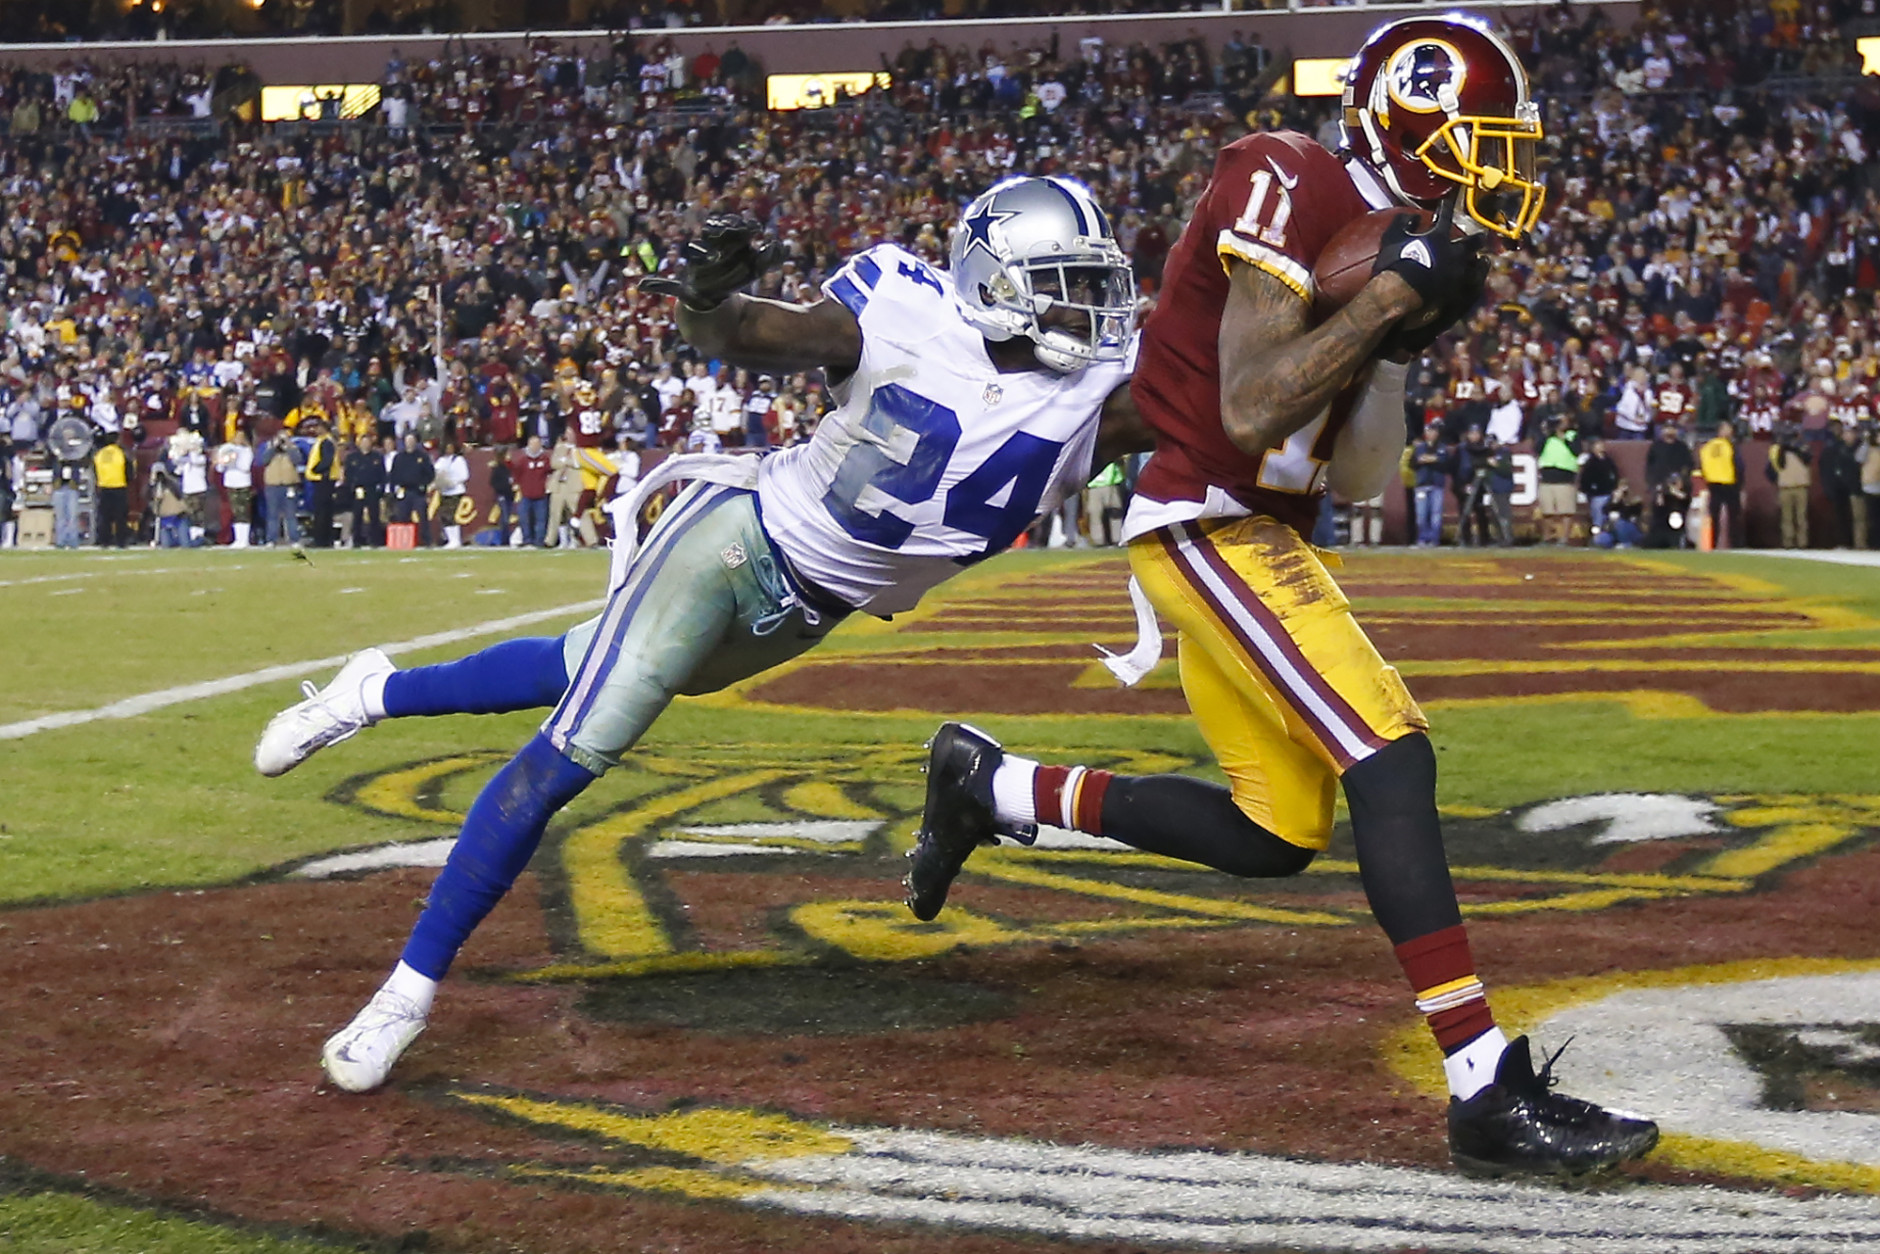 Washington Redskins wide receiver DeSean Jackson (11) pulls in a pass for a touchdown as Dallas Cowboys cornerback Morris Claiborne (24) reaches for him during the second half of an NFL football game in Landover, Md., Monday, Dec. 7, 2015. (AP Photo/Alex Brandon)